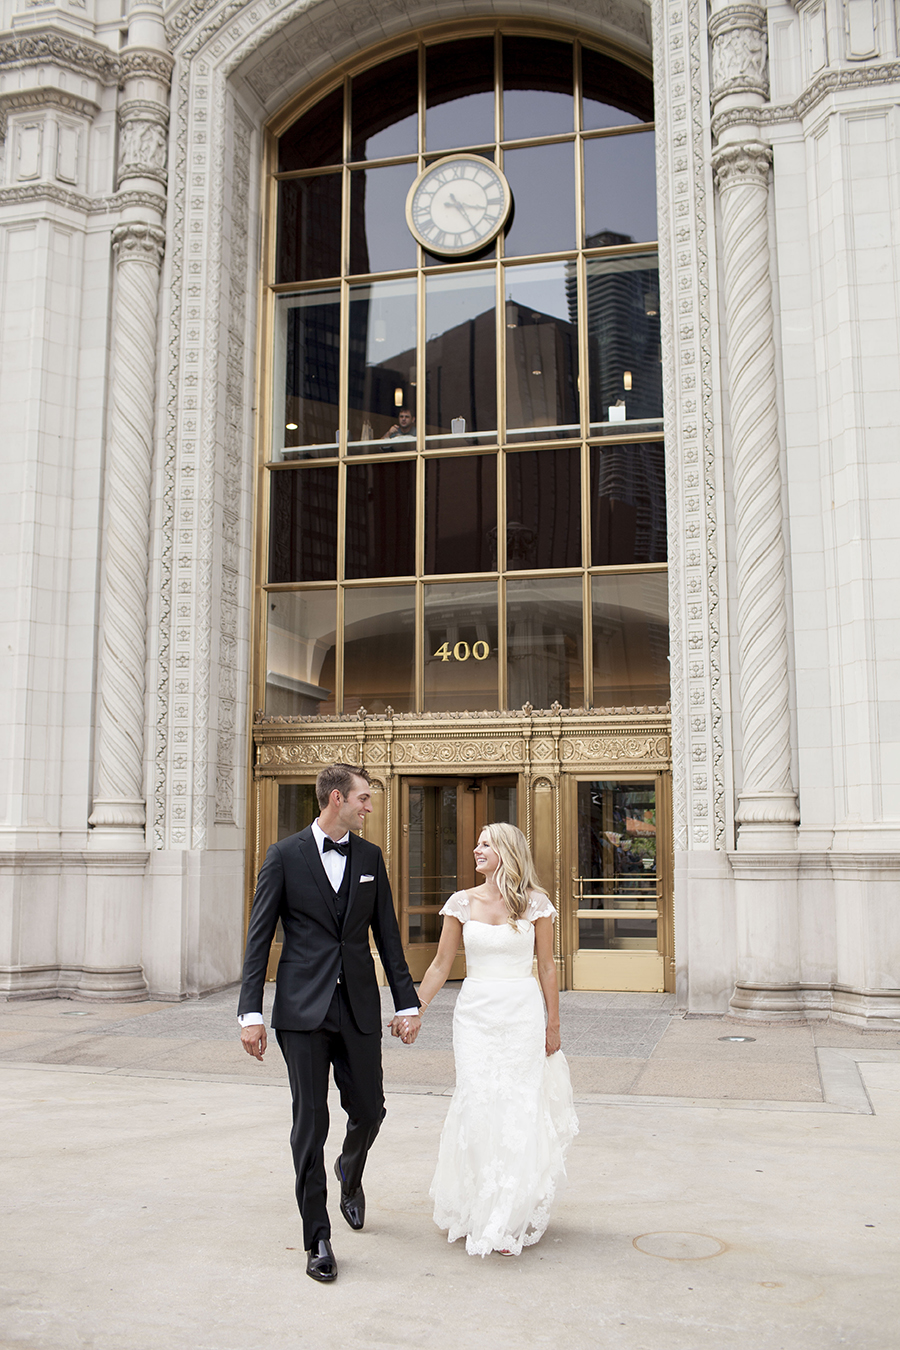 3 Wedding Traditions You're Allowed To Break - Natalie Probst Photography